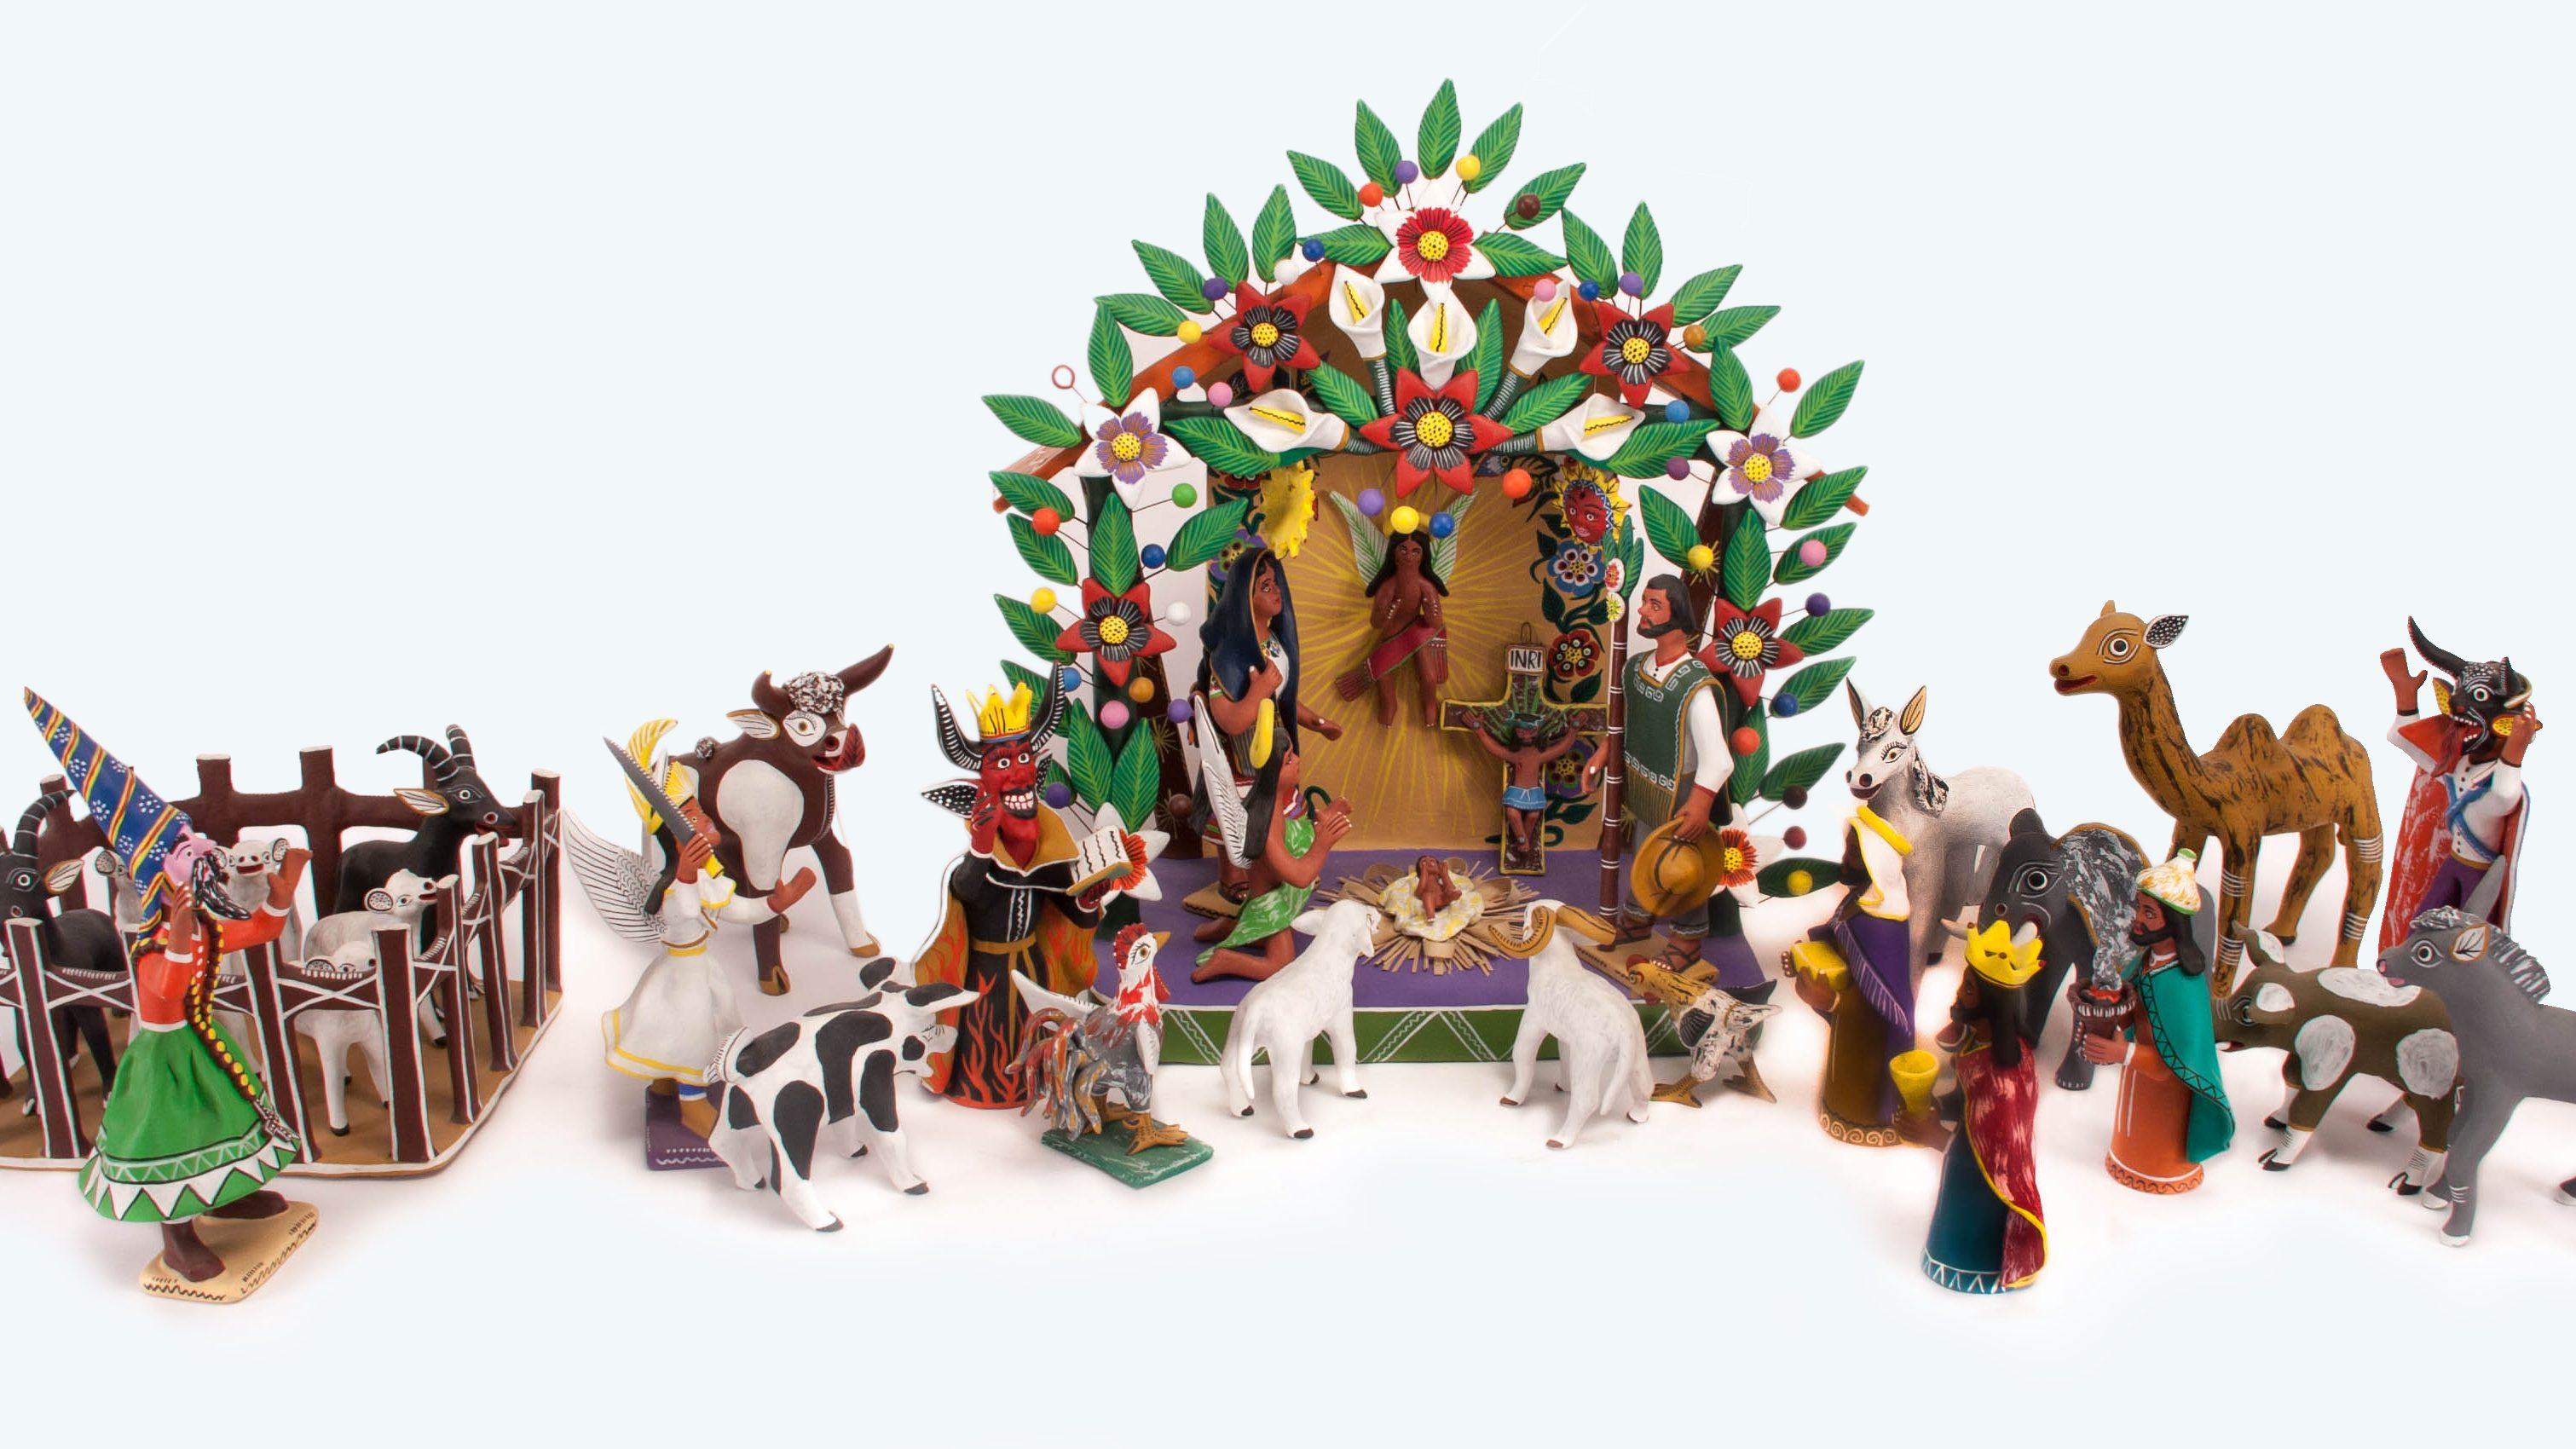 Mexico S Nativity Scenes Are An Exuberant And Fantastical